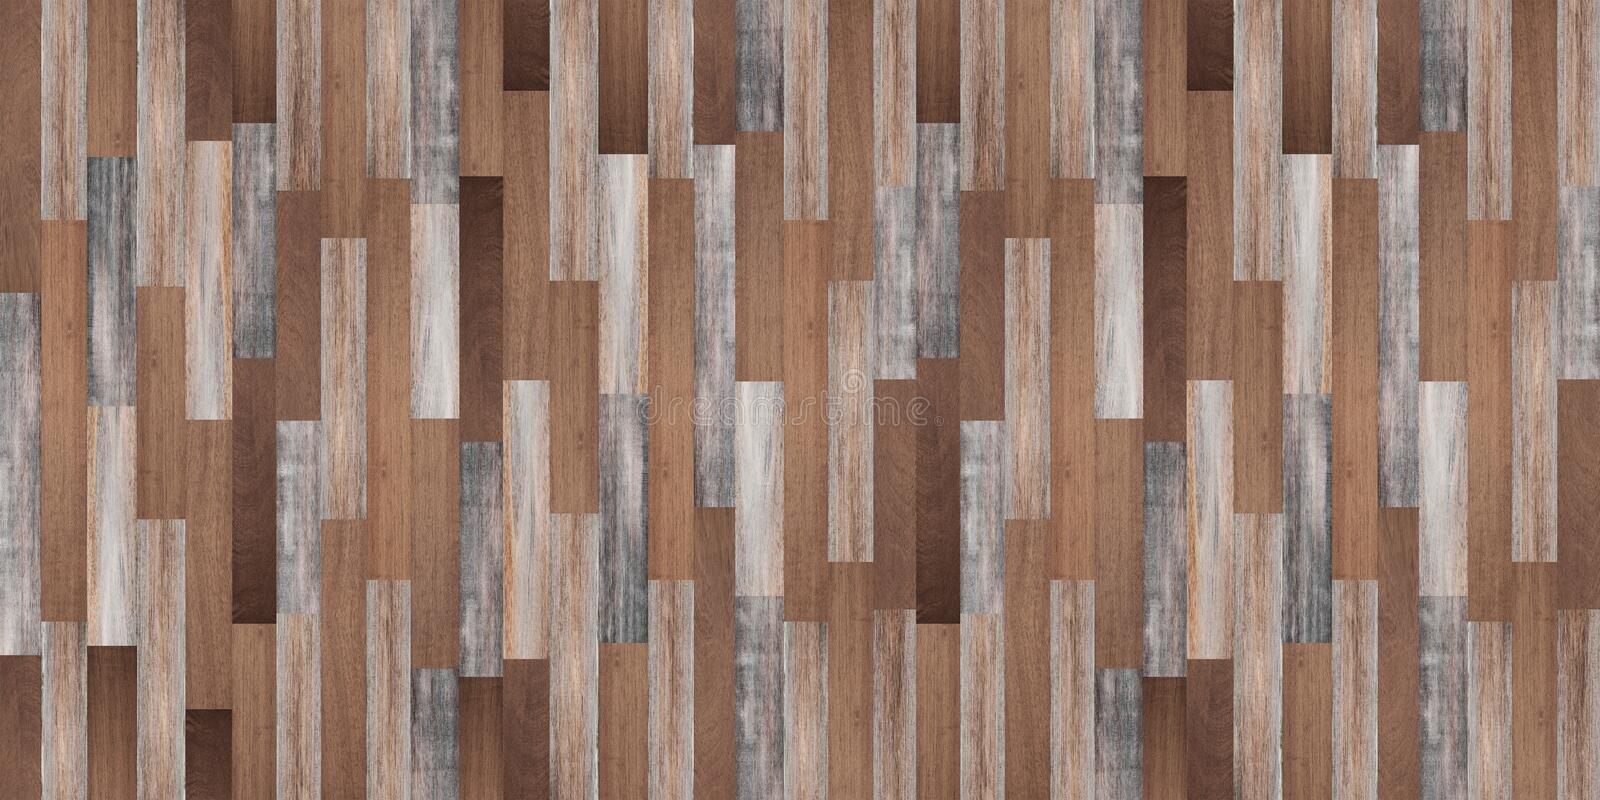 Panoramic wood texture background, seamless wood floor. Panoramic wood texture backgrounds, seamless wood floor stock images